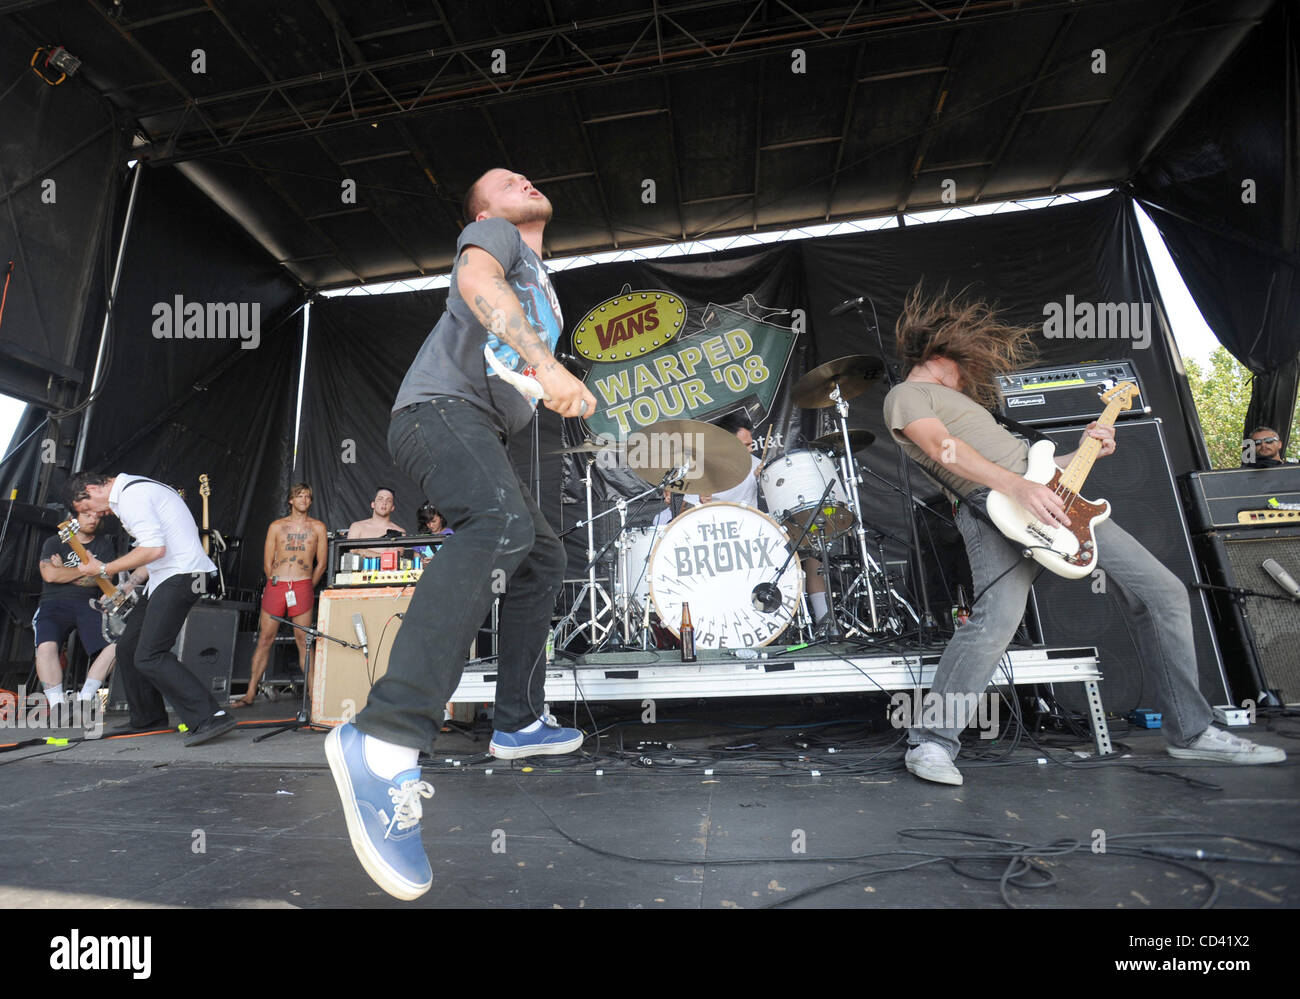 Jul 14, 2008 - Charlotte, North Carolina; USA - Musicians THE BRONX perform live as part of the 2008 Vans Warped - Stock Image